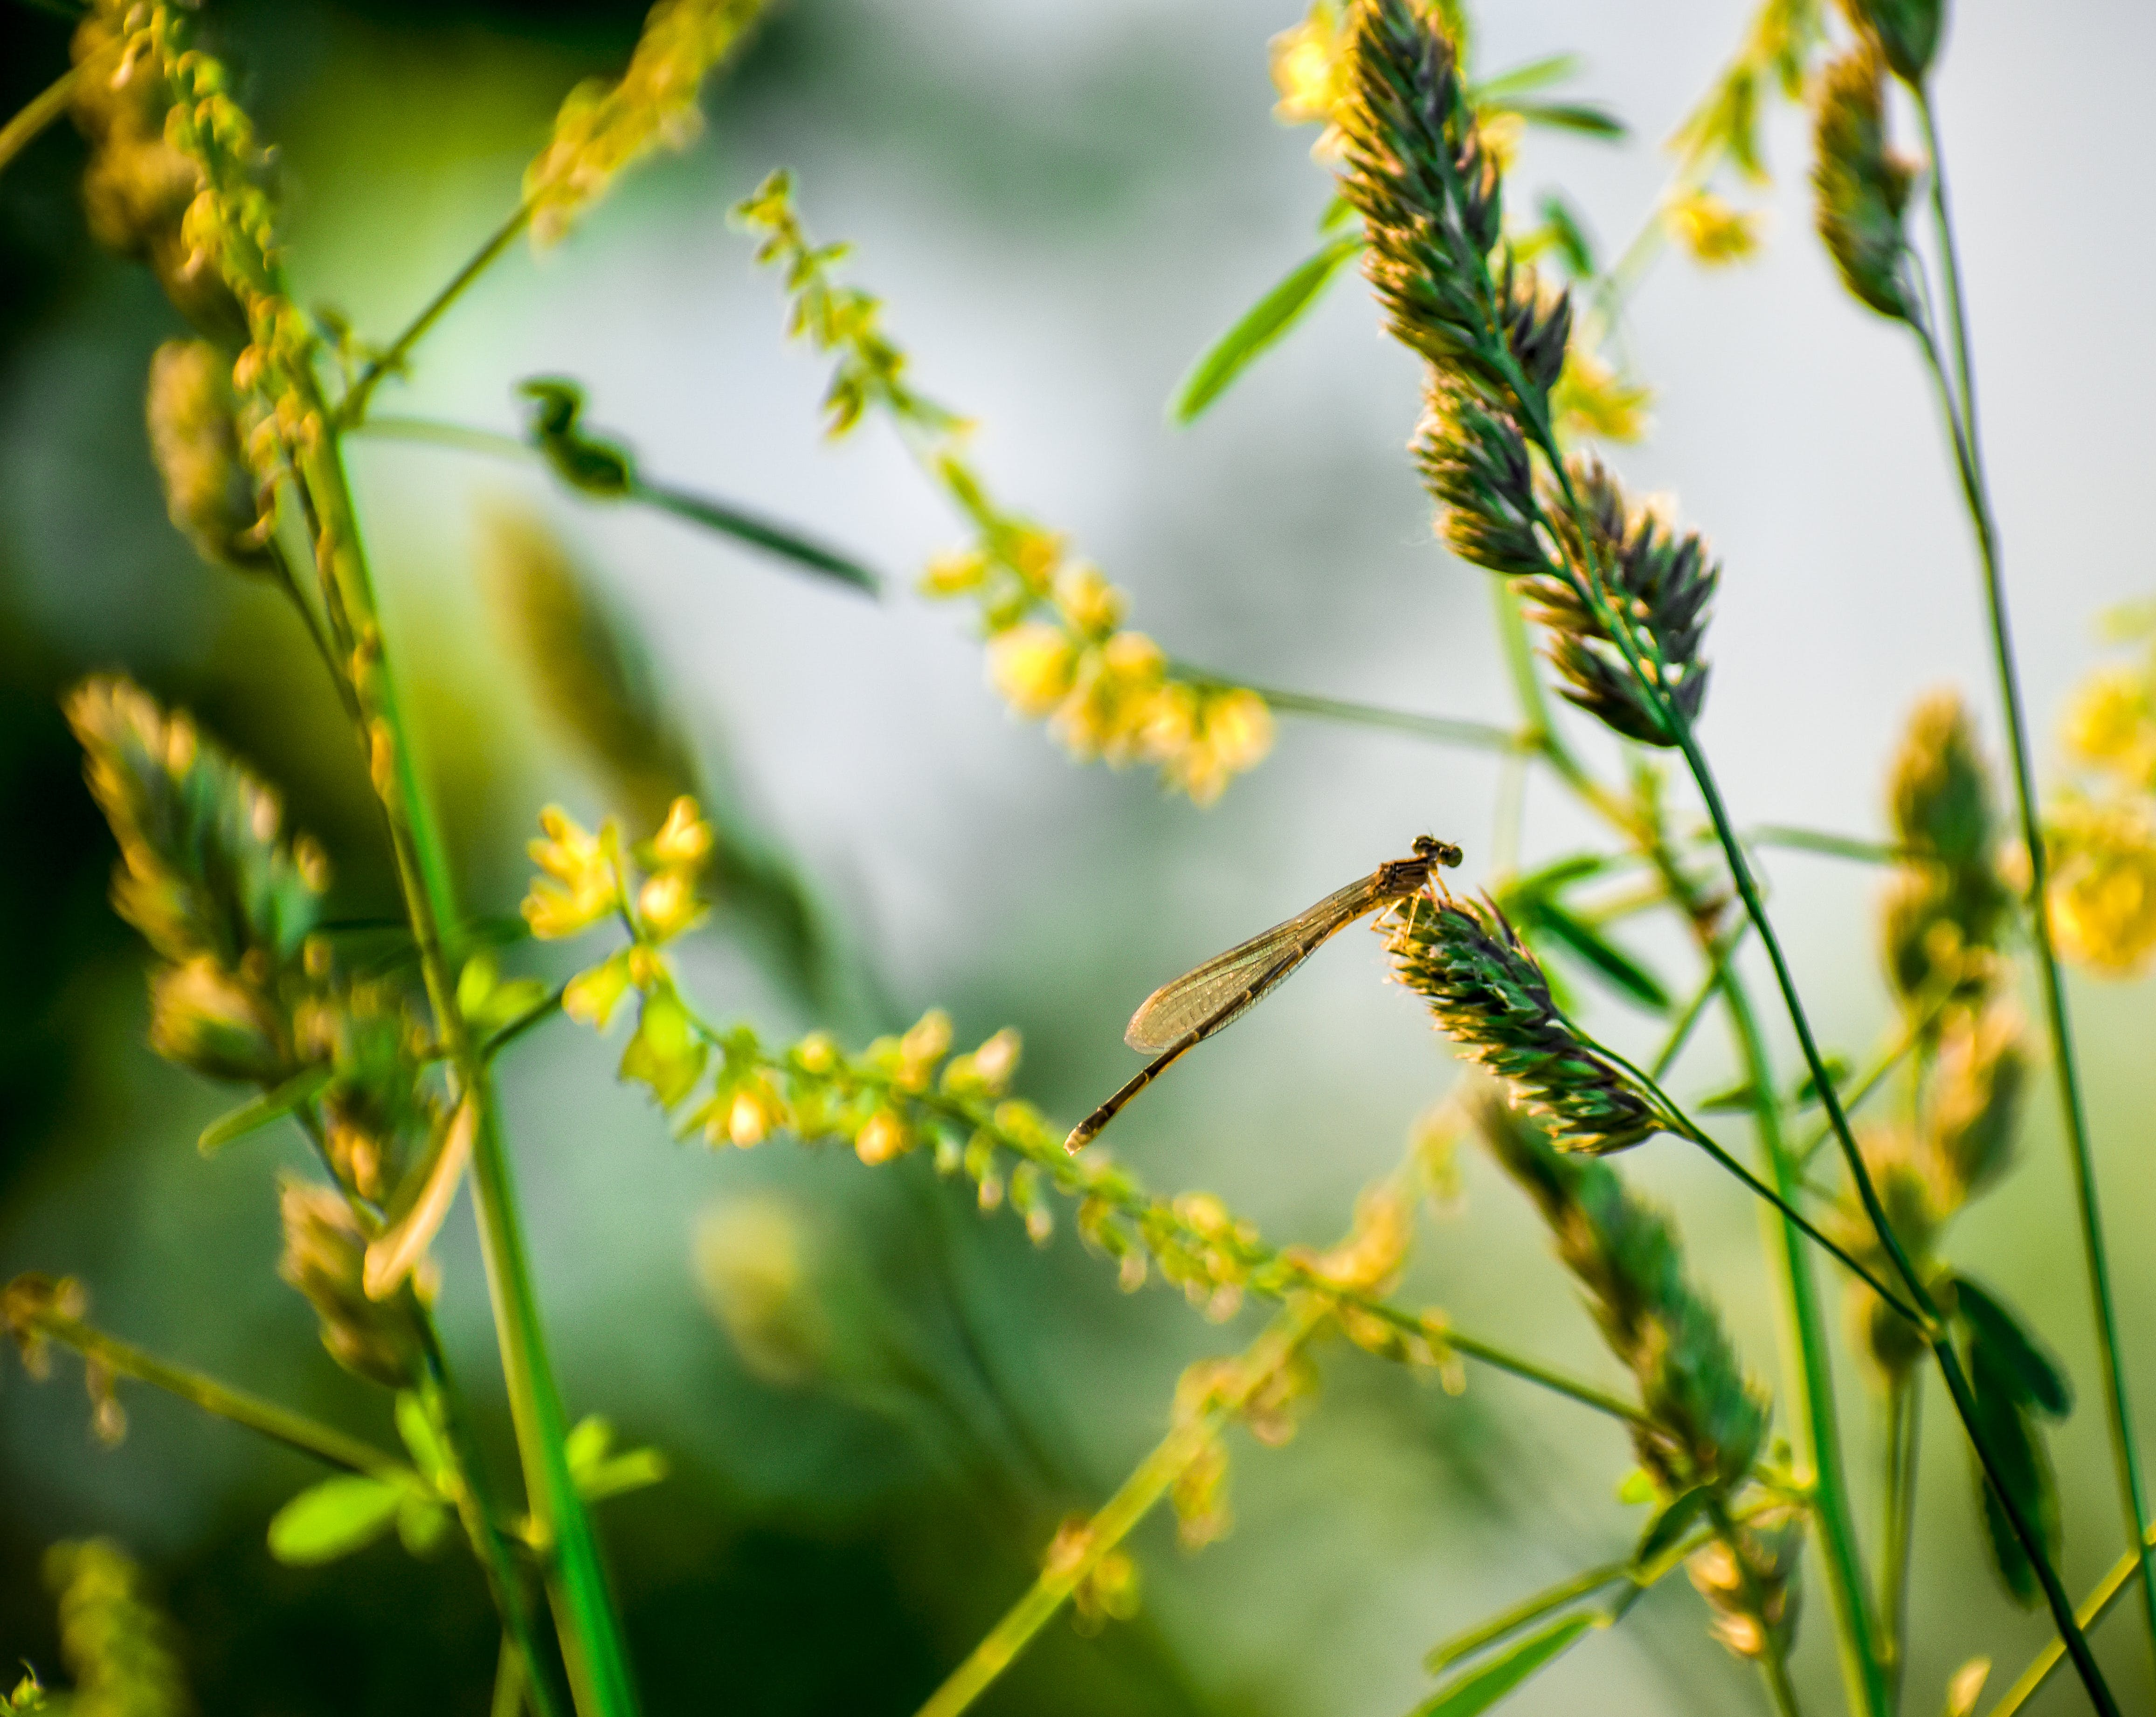 Brown Damselfly Perched on Yellow Flower in Selective Focus Photography